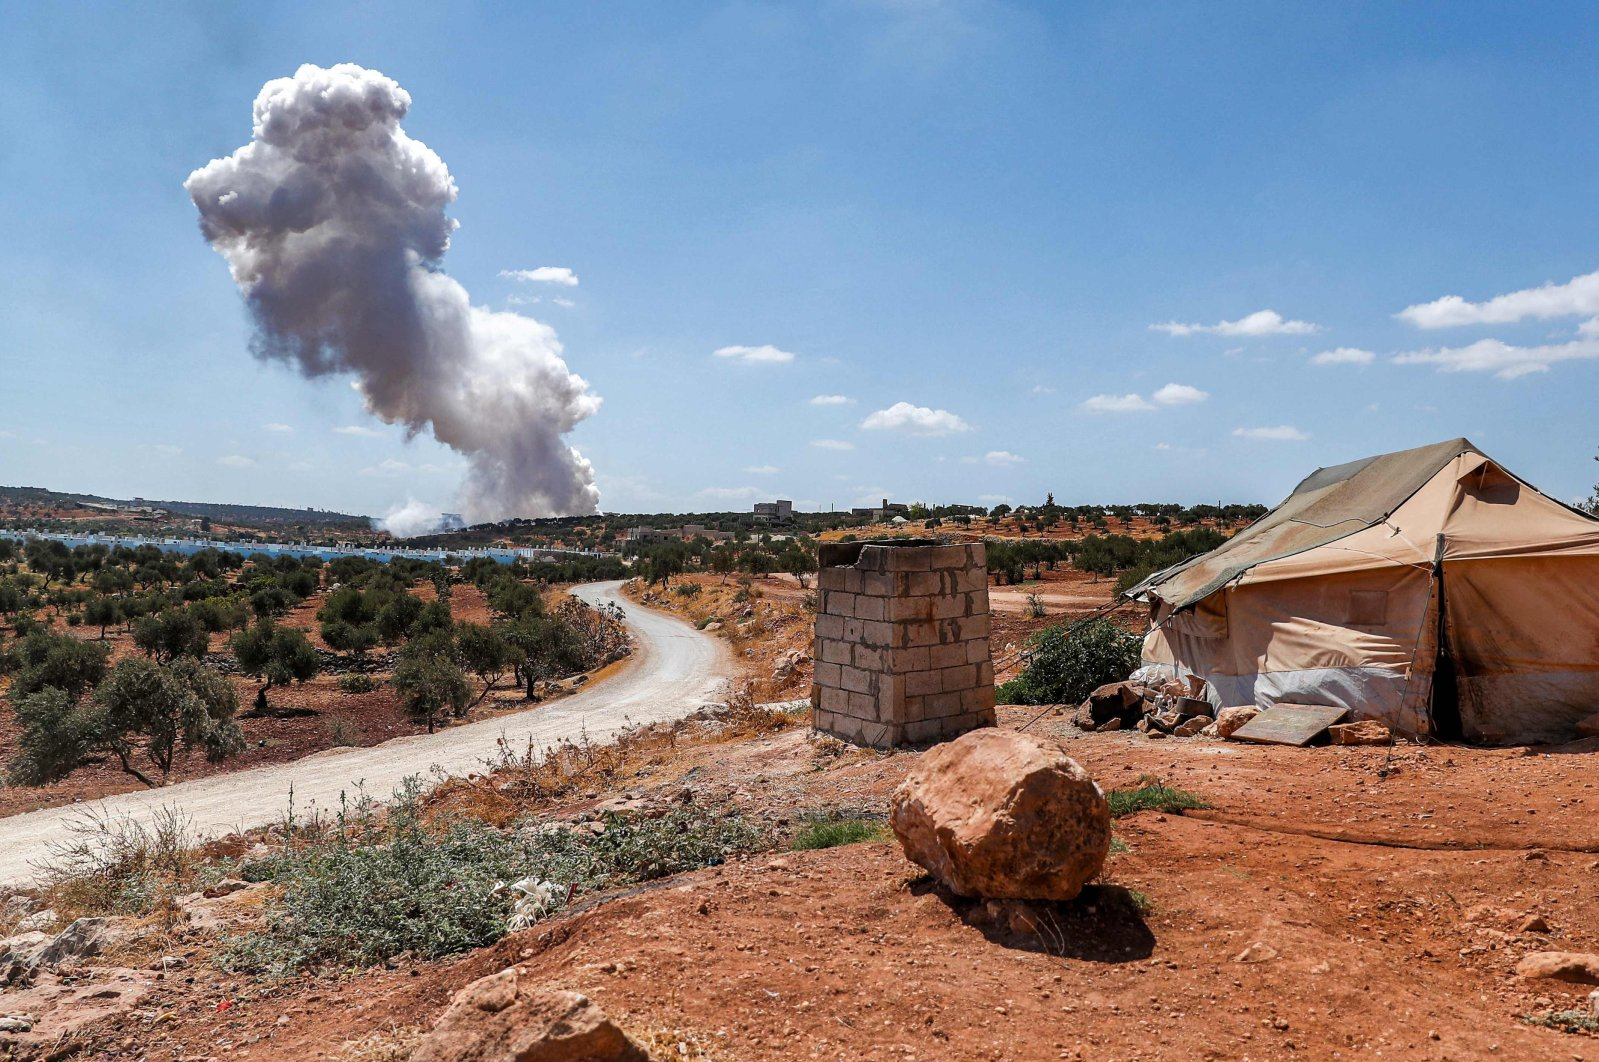 A plume of smoke rises after an aerial bombardment near a make-shift camp for displaced Syrians near the town of Kafraya in the north of Syria's rebel-held Idlib province, Sept. 7, 2021. (Photo by OMAR HAJ KADOUR / AFP)